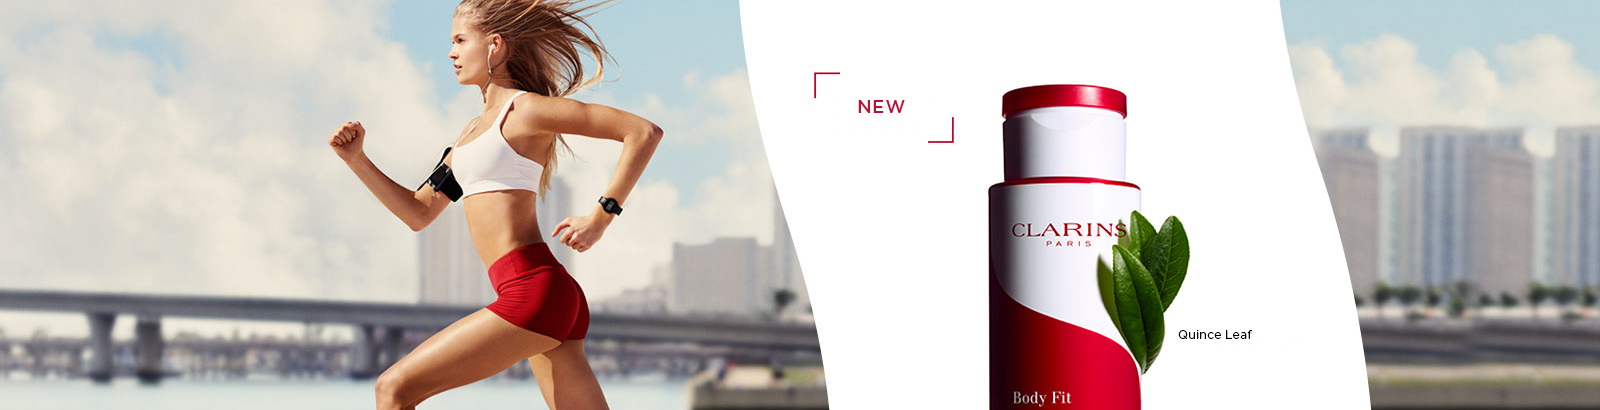 NEW Contouring Innovation. Body Fit. Meet your body coach.